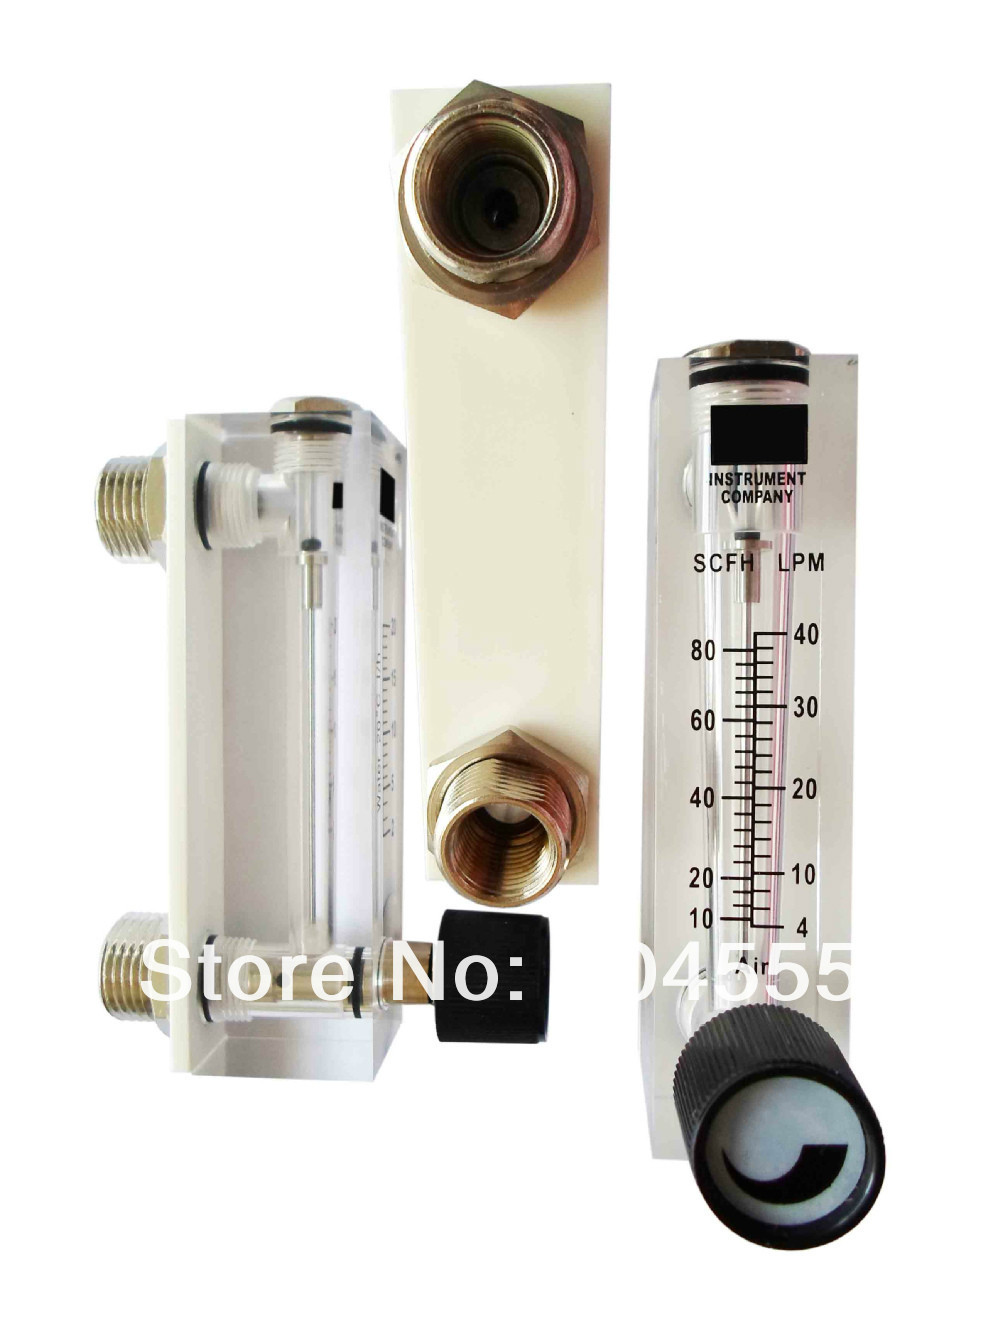 Panel water flow controller water flow meter liquid flowmeter with adjustable valve 2-20L/Hour water flow meter